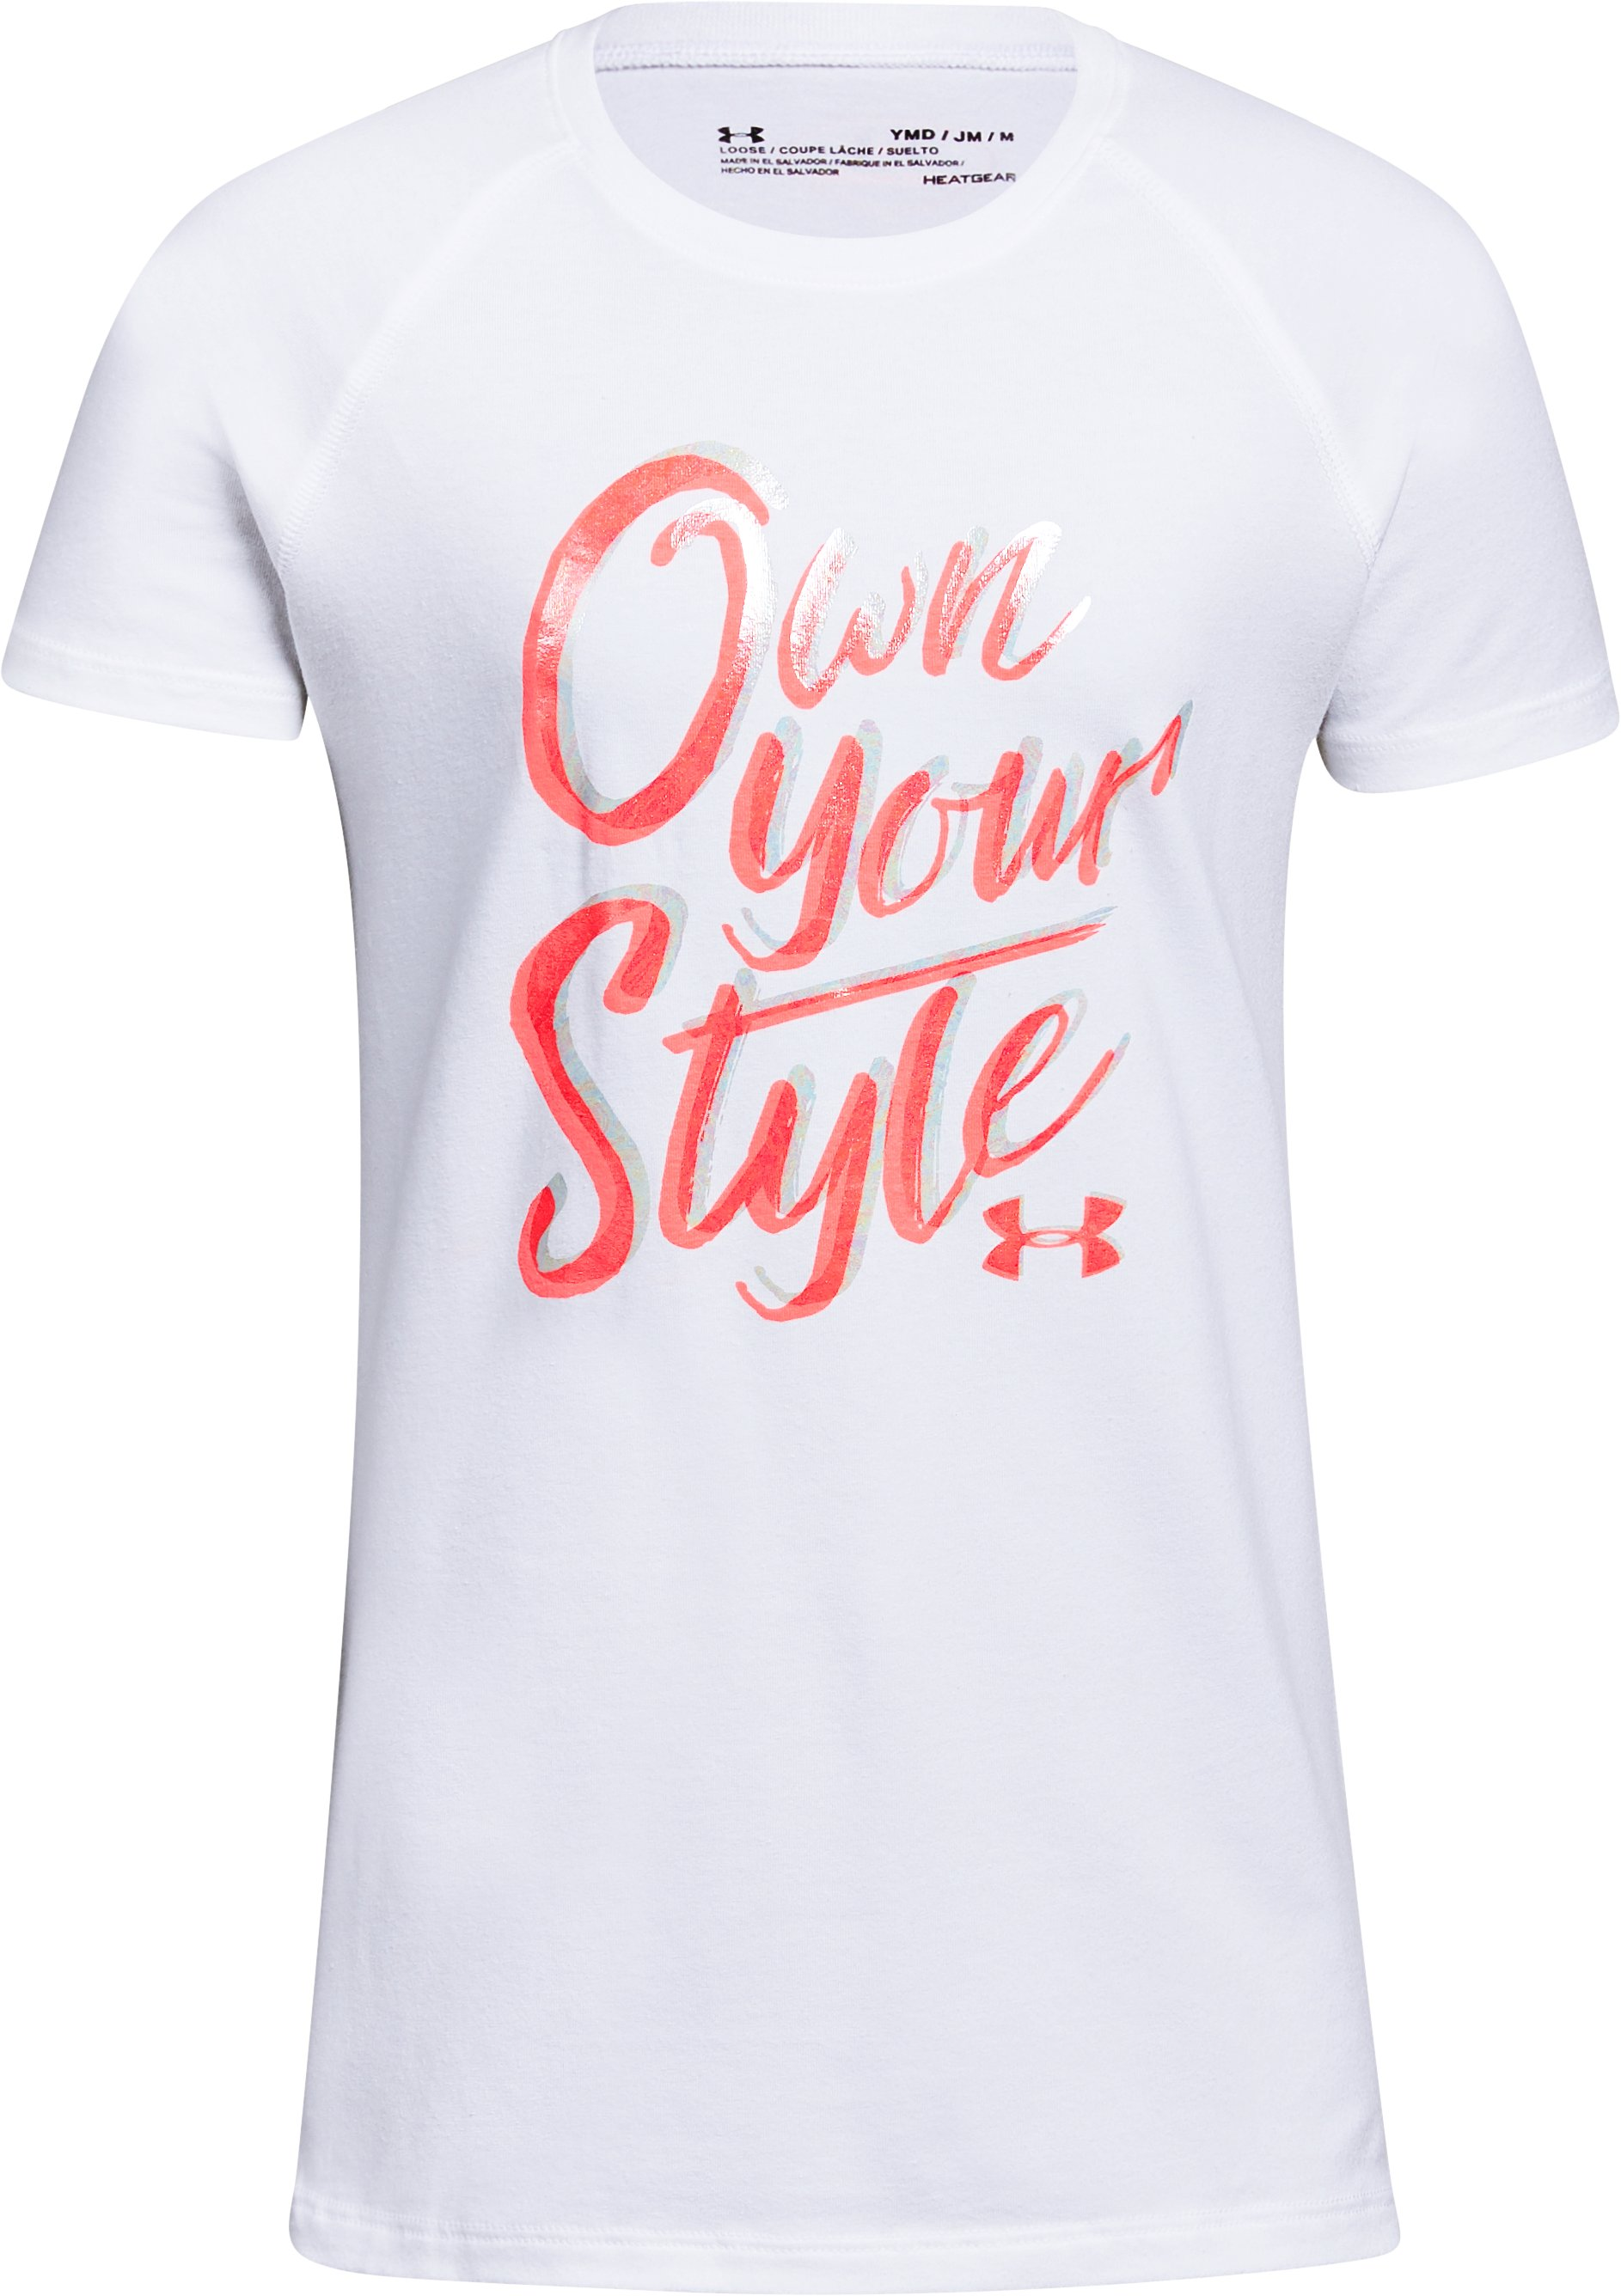 Girls' UA Own Your Style T-Shirt, White